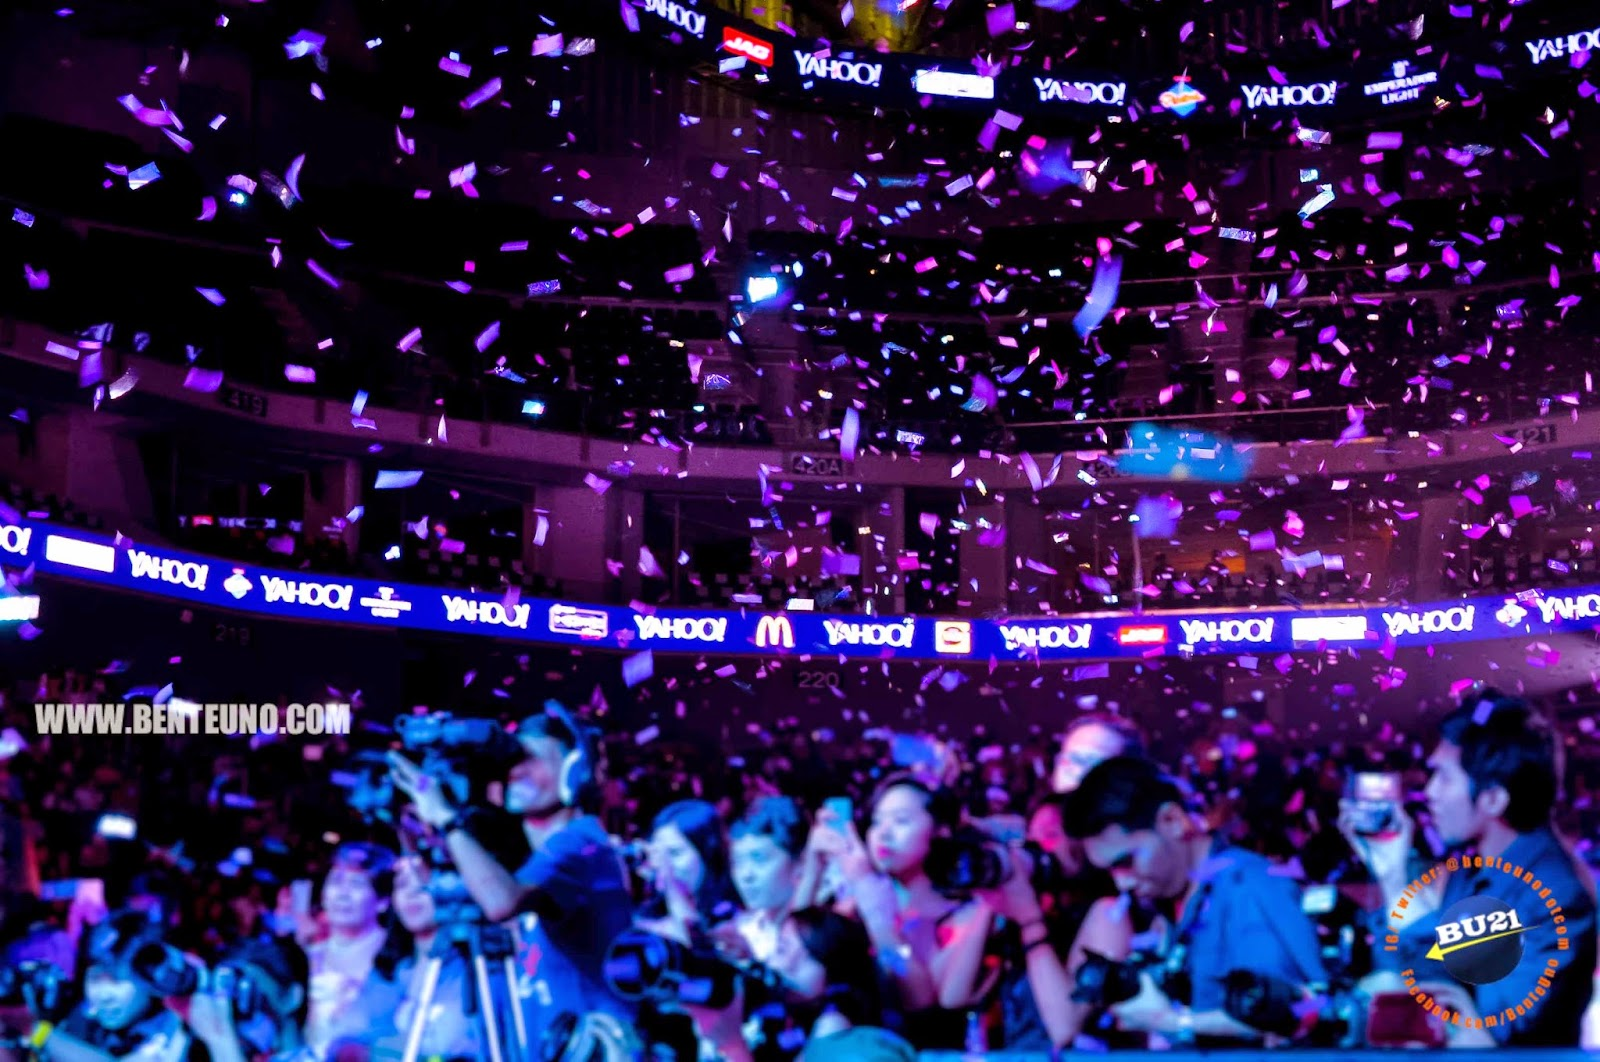 Shower of confetti at the Yahoo Celebrity Awards 2014